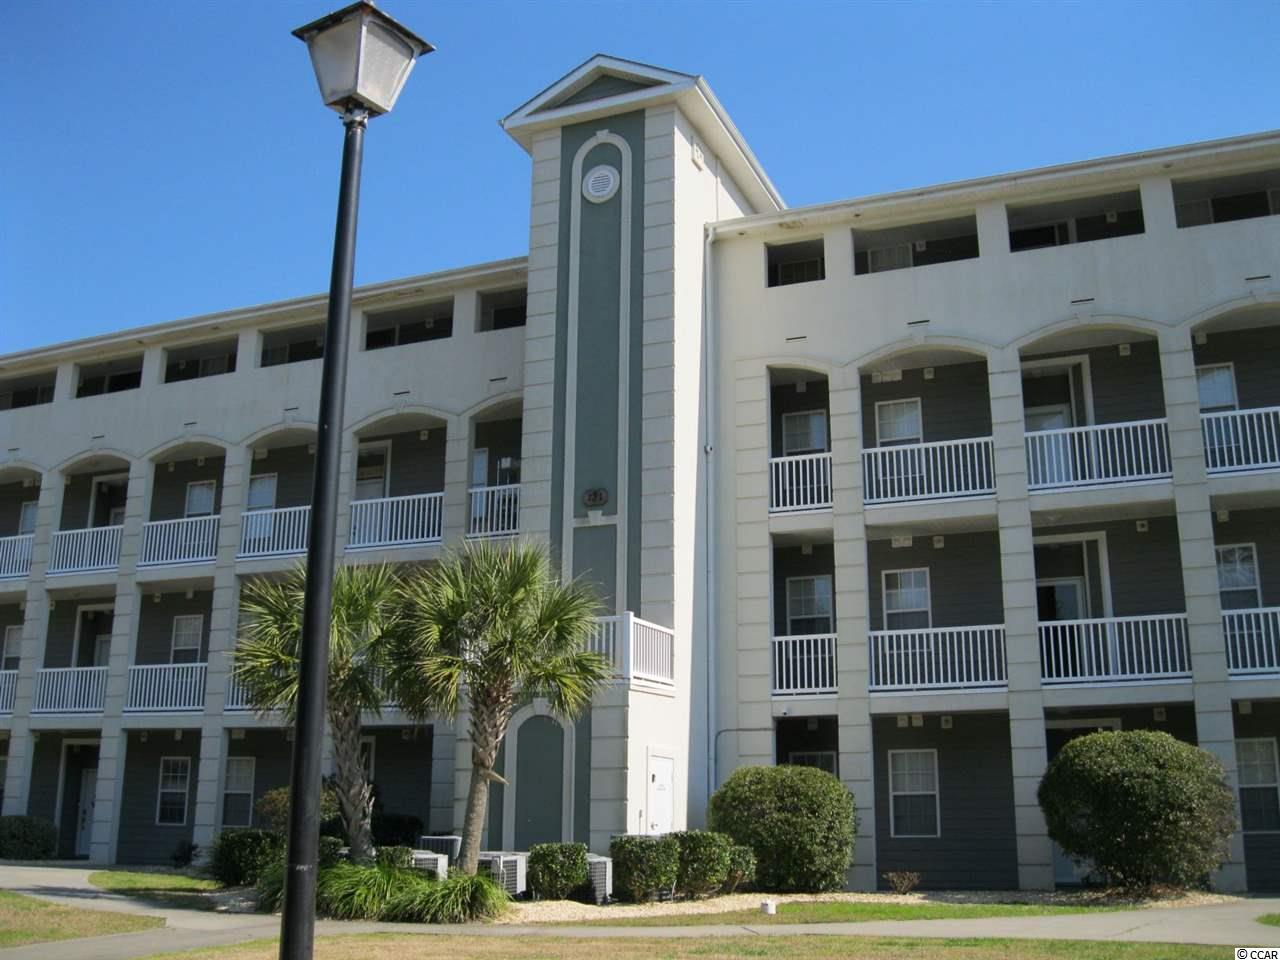 This outstanding 3BR/2BA condo is located on the First Floor in Carolina Yacht Landing, Little River, SC.  The extended bay window in the living room makes this a very spacious condo where you can enjoy the peaceful view of two fountains in the pond from your living room, master bedroom, or screened porch.  You will appreciate the privacy of the large master bedroom with his and her closets, and your guests will welcome the size and privacy of the guest bedrooms.   The condo has crown molding, and will accommodate a full size washer and dryer.   You will appreciate the security of being a gated community as well as the security patrols.   Only steps from the pool, hot tub, boat parking, with boat slips available. Just minutes from shopping, dining, golf and the beach make this a wonderful place for you to enjoy downtime, family and friends.   Don't miss out on this! Must See This Outstanding Condo! Make your appointment today.   Square footage is approximate and not guaranteed. Buyer is responsible for verification